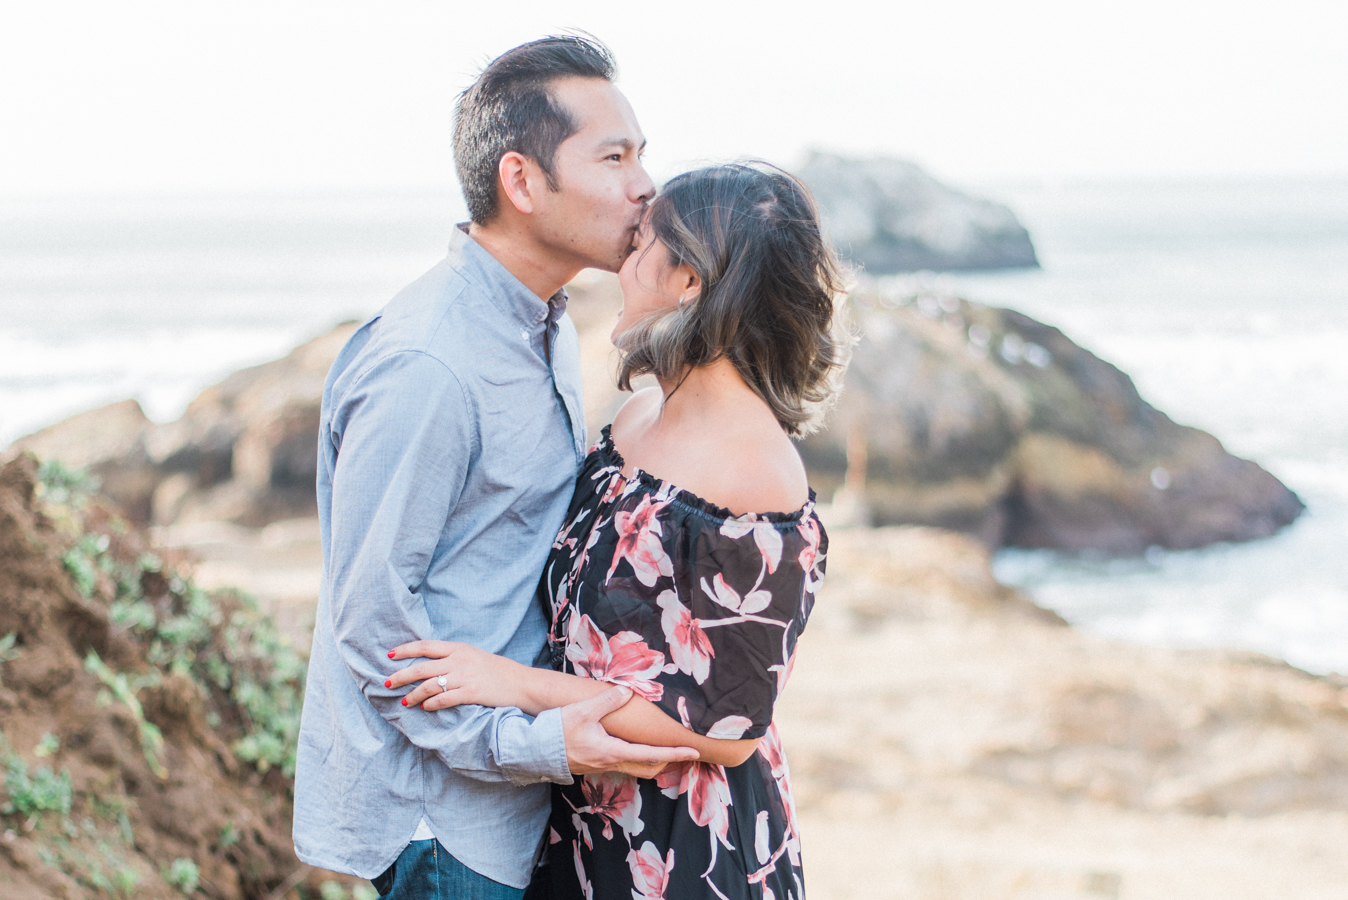 Epiphany Photography Fanny Huynh- San Francisco Engagement Session-2